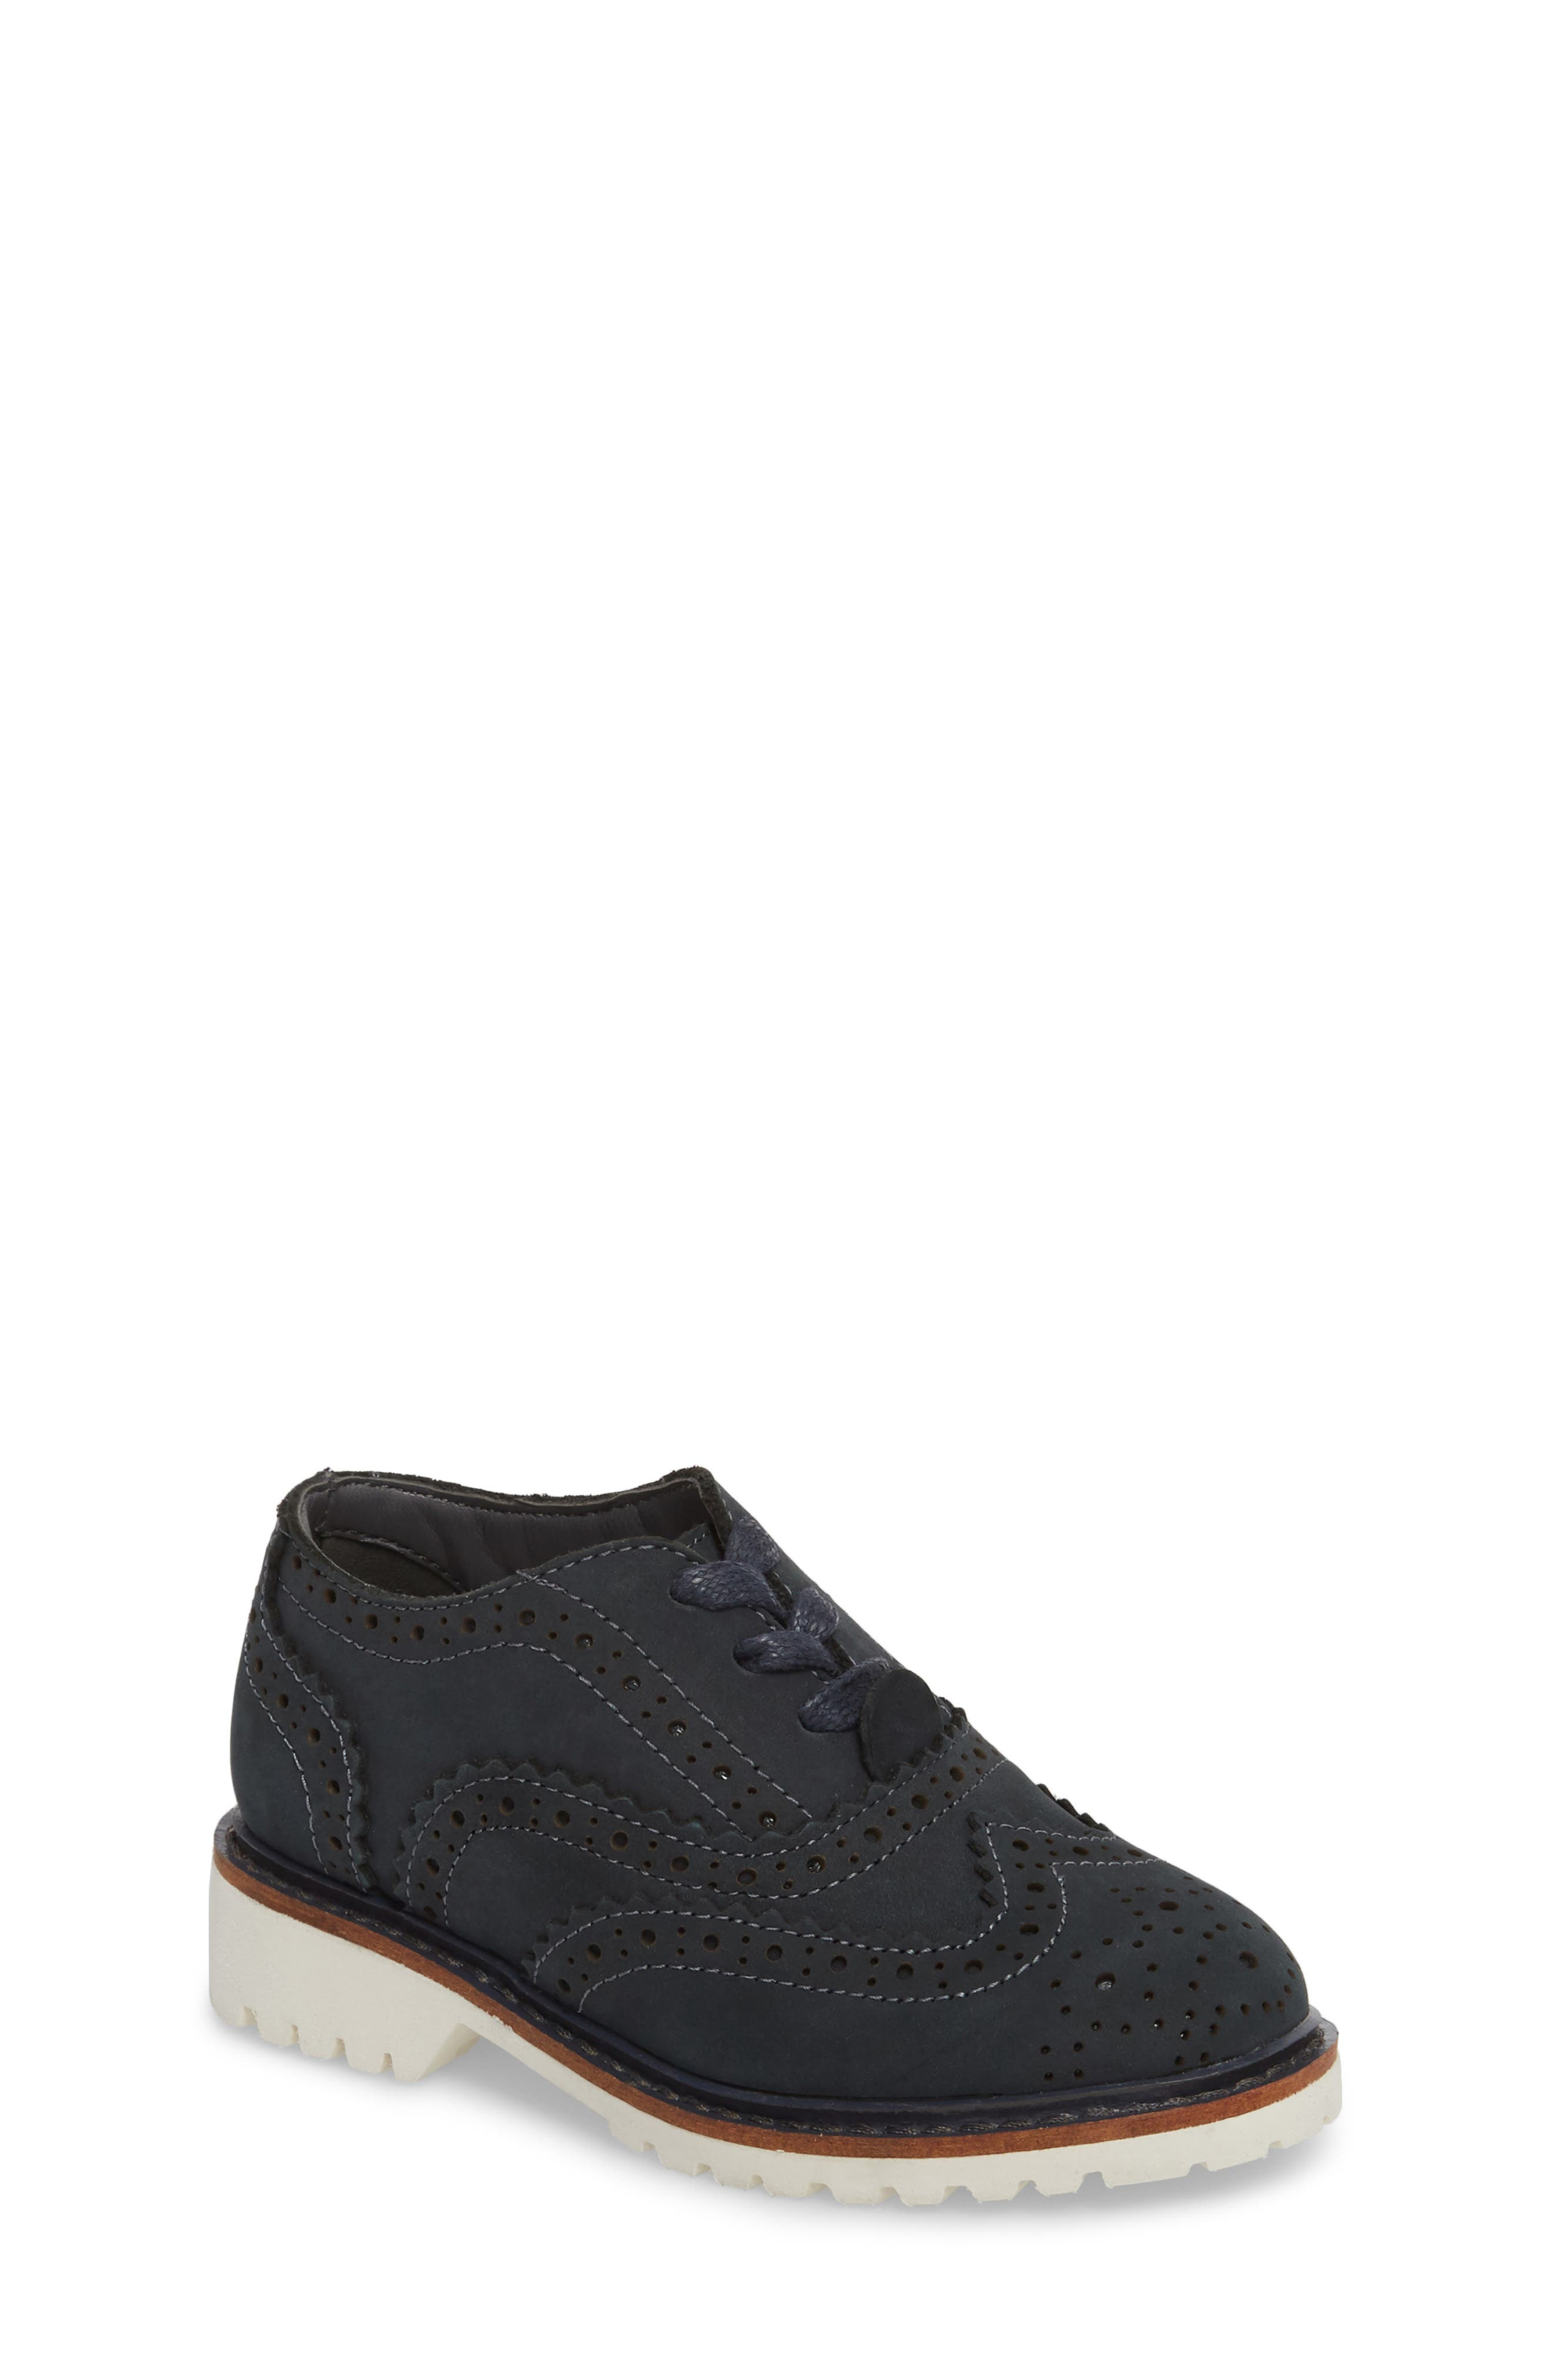 Kenneth Cole New York Wingtip Oxford (Walker, Toddler, Little Kid & Big Kid)